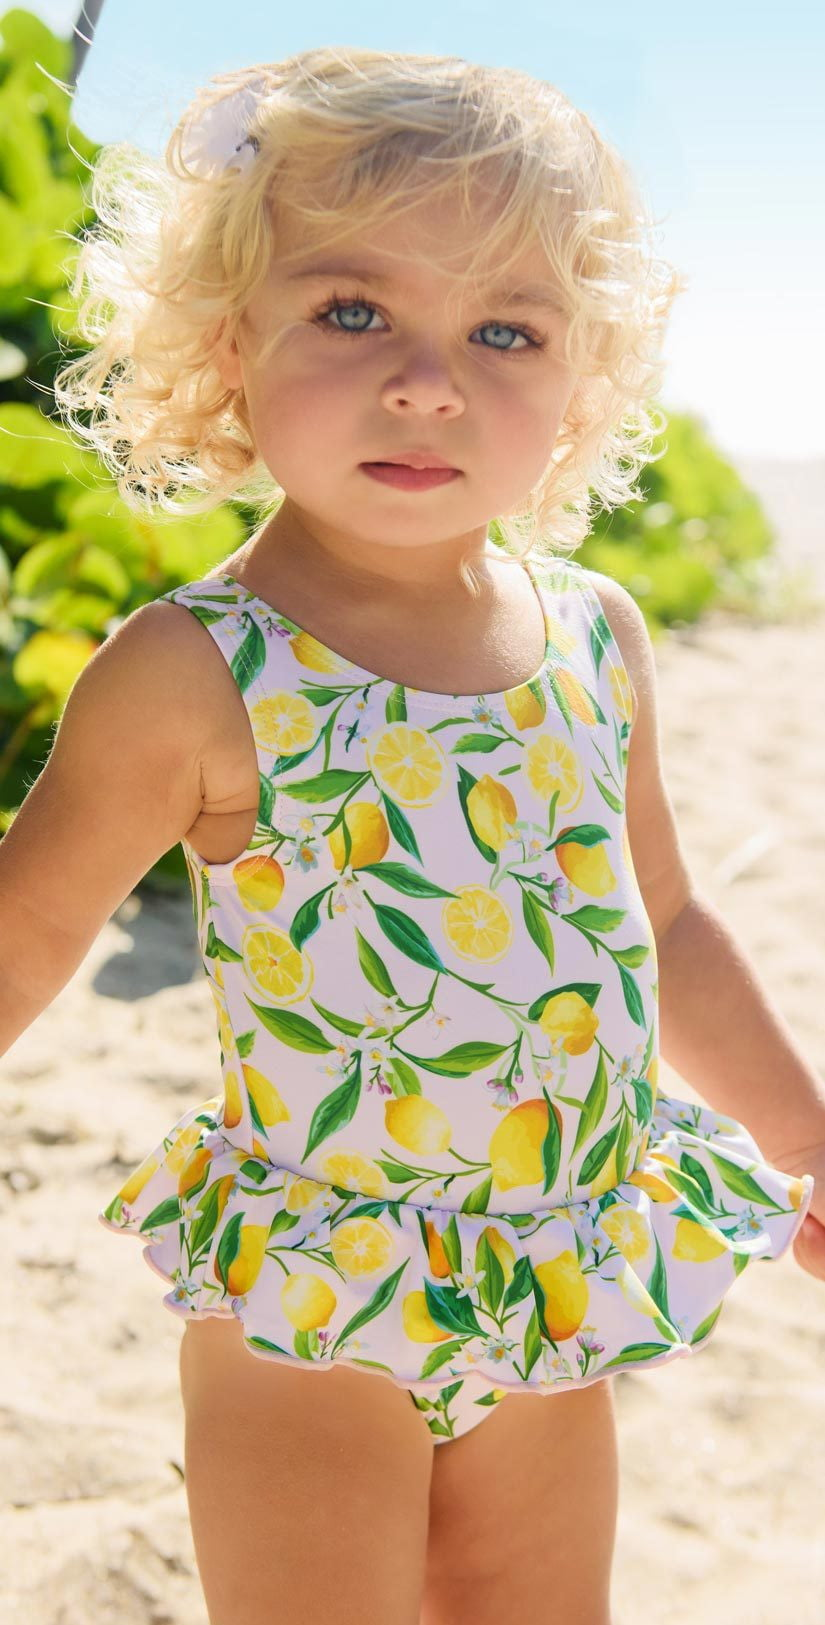 Snapperrock Little Girl's Lemon Skirted Swimsuit G13078: